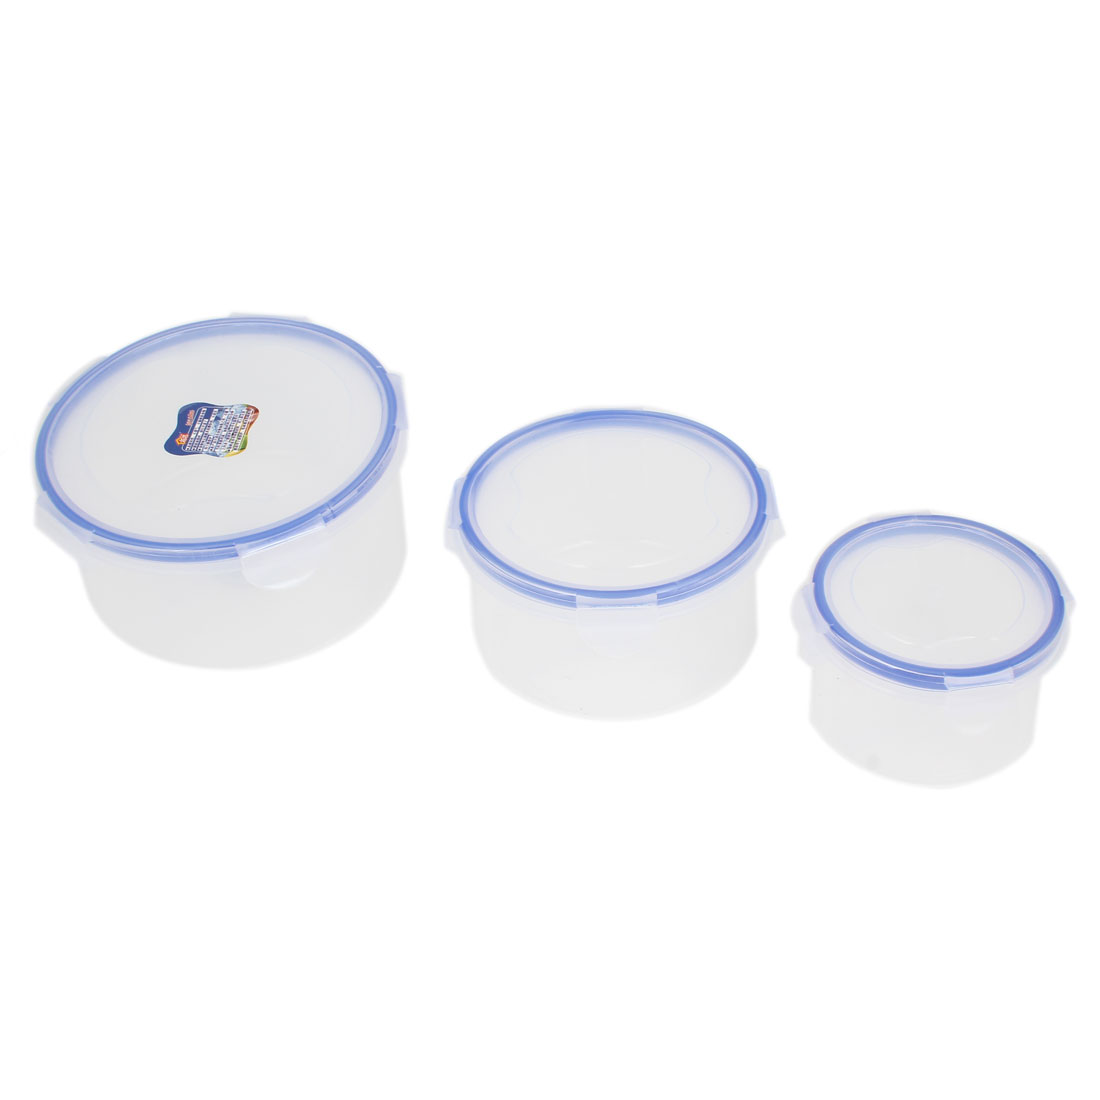 Kitchenware Round Shape Airtight Blue Clear Plastic Food Storage Box 3pcs